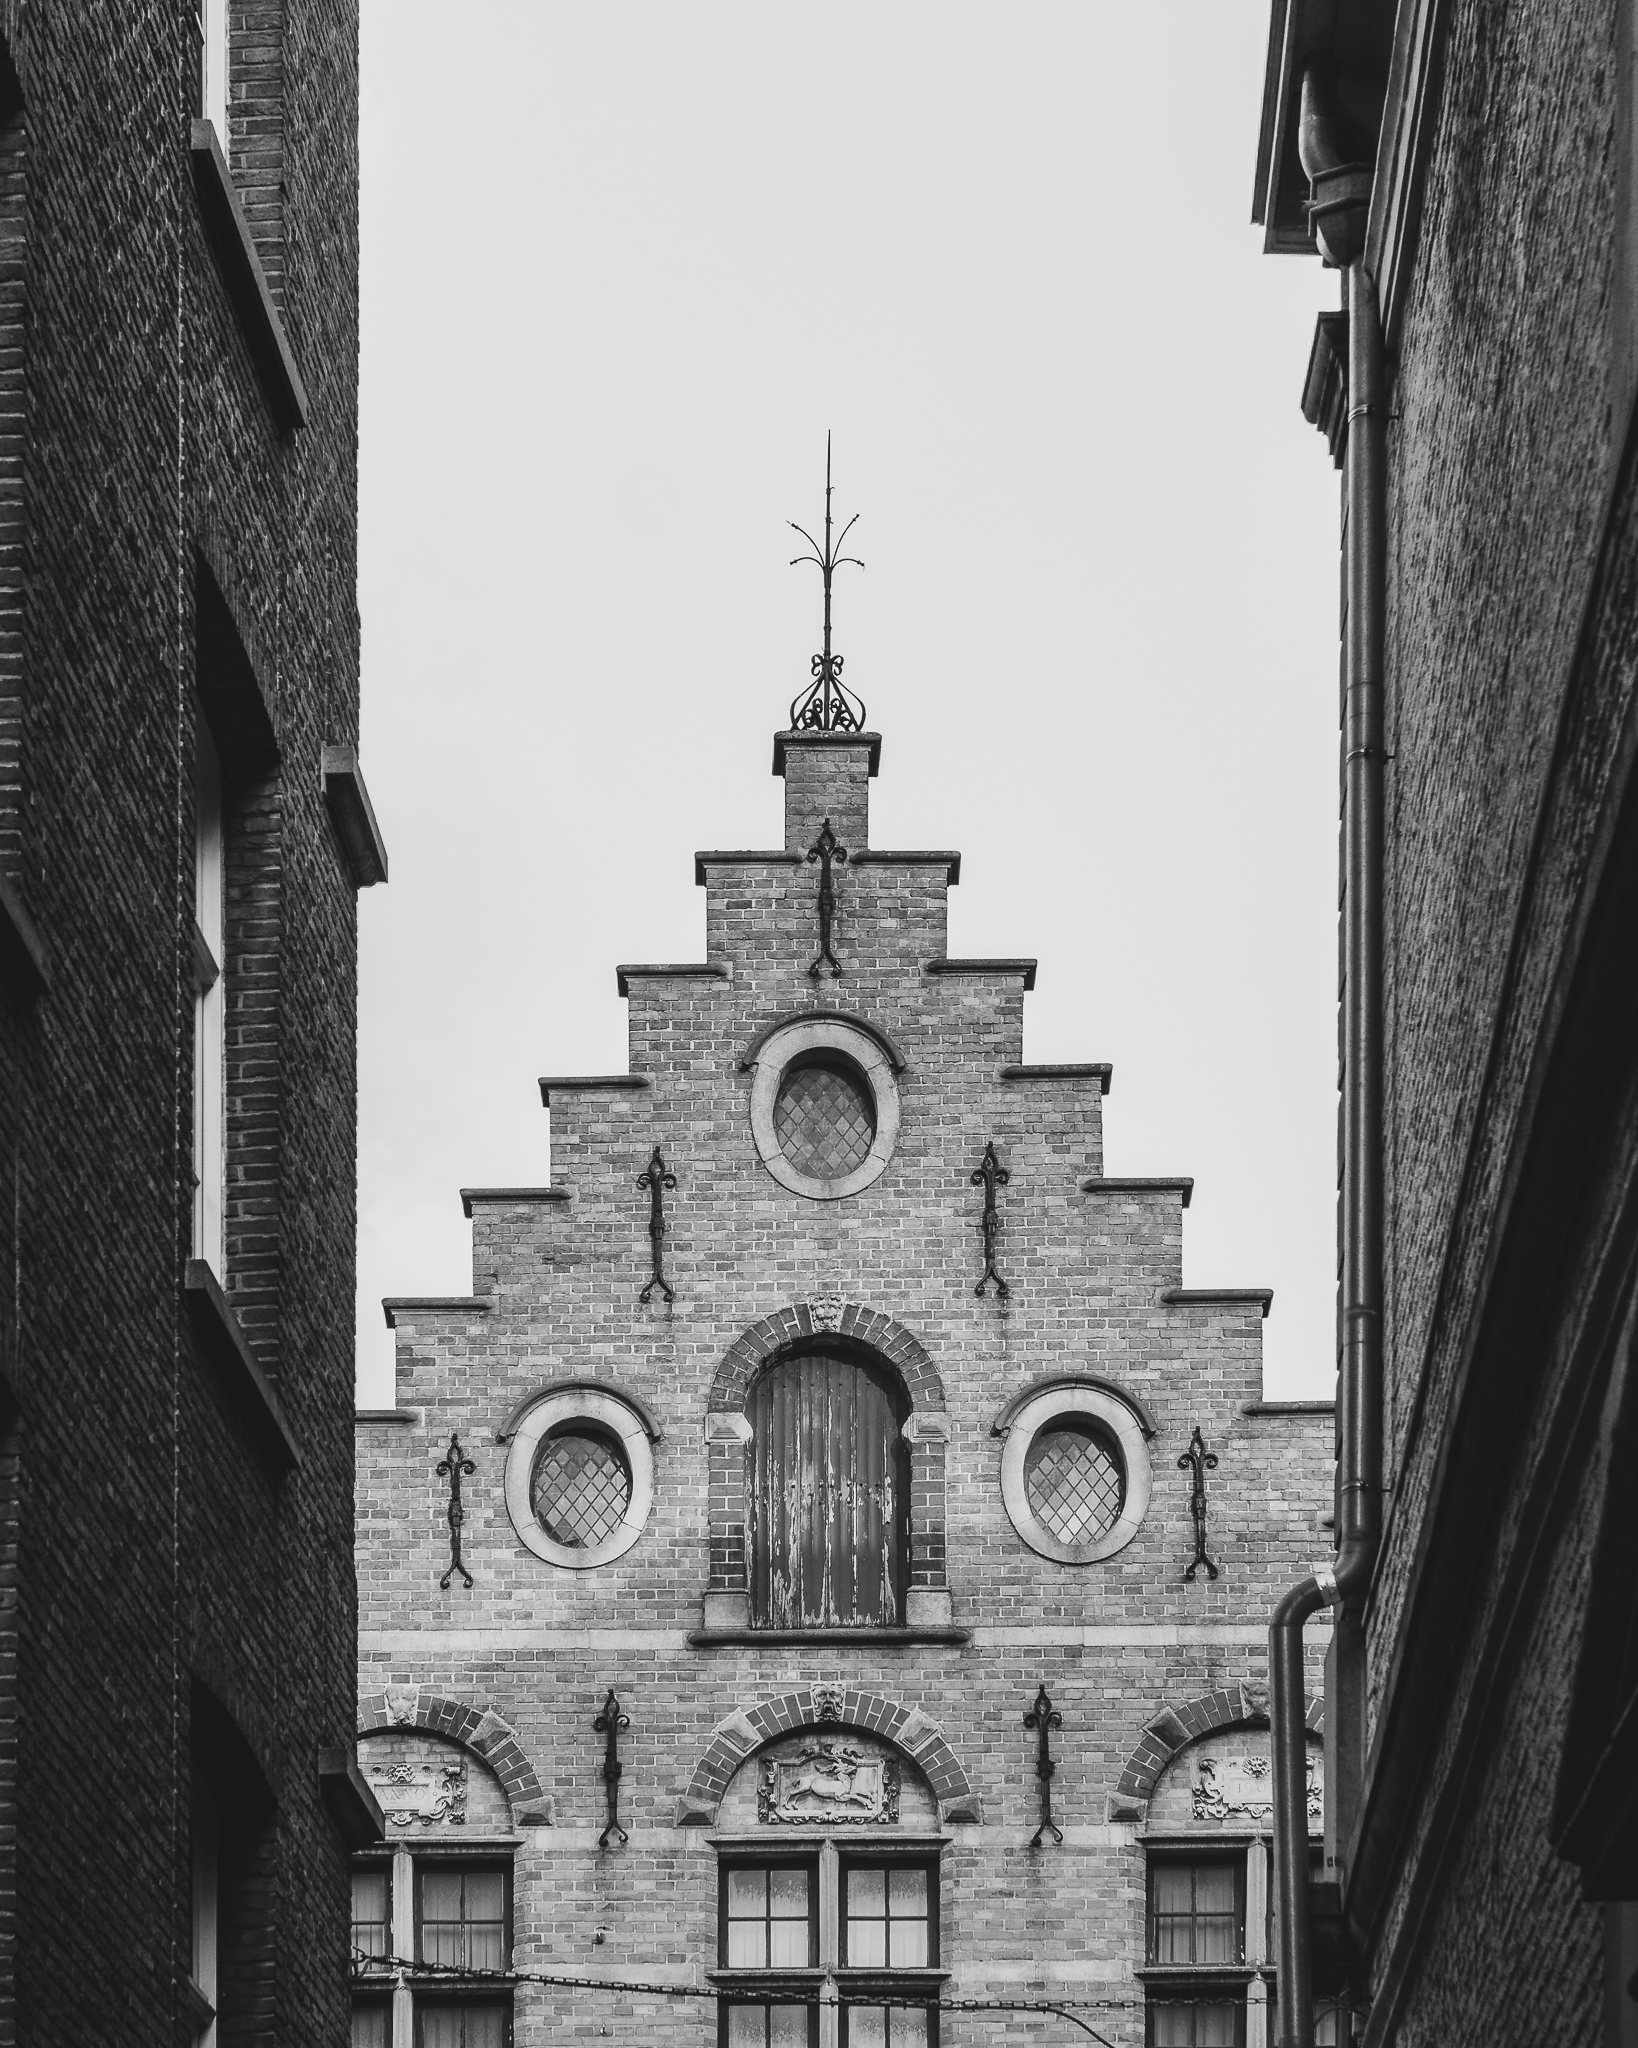 The classic rooftops that make up Bruges iconic architecture... also made creepy by black and white.